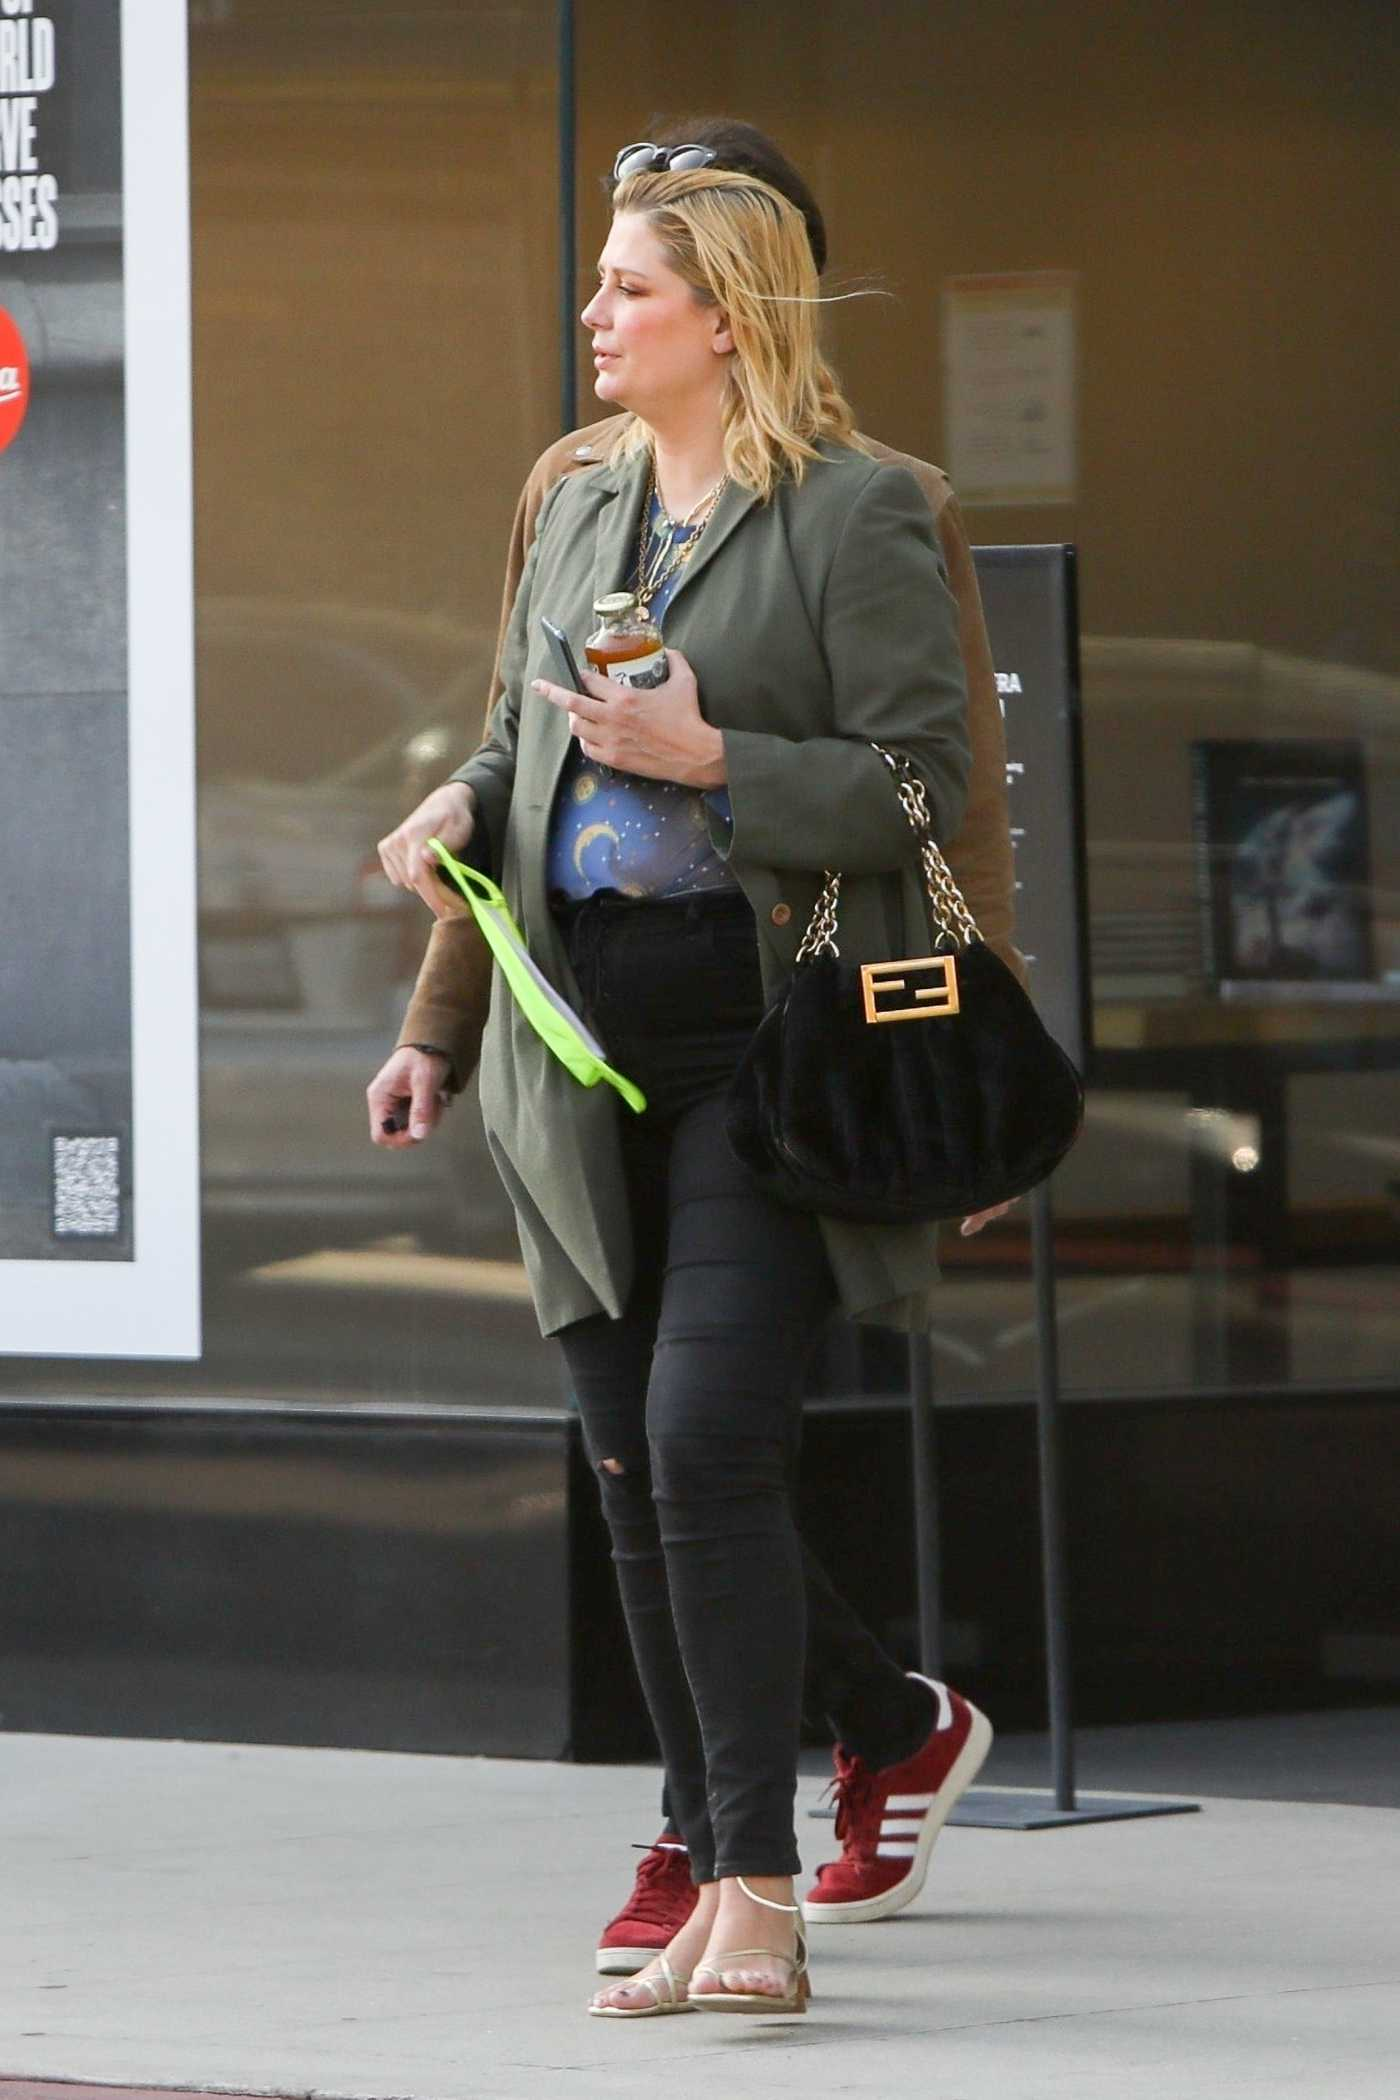 Mischa Barton in an Olive Jacket Goes Shopping with Her Boyfriend Gian Marco Flamini at Leica Camera Store in Los Angeles 05/07/2021